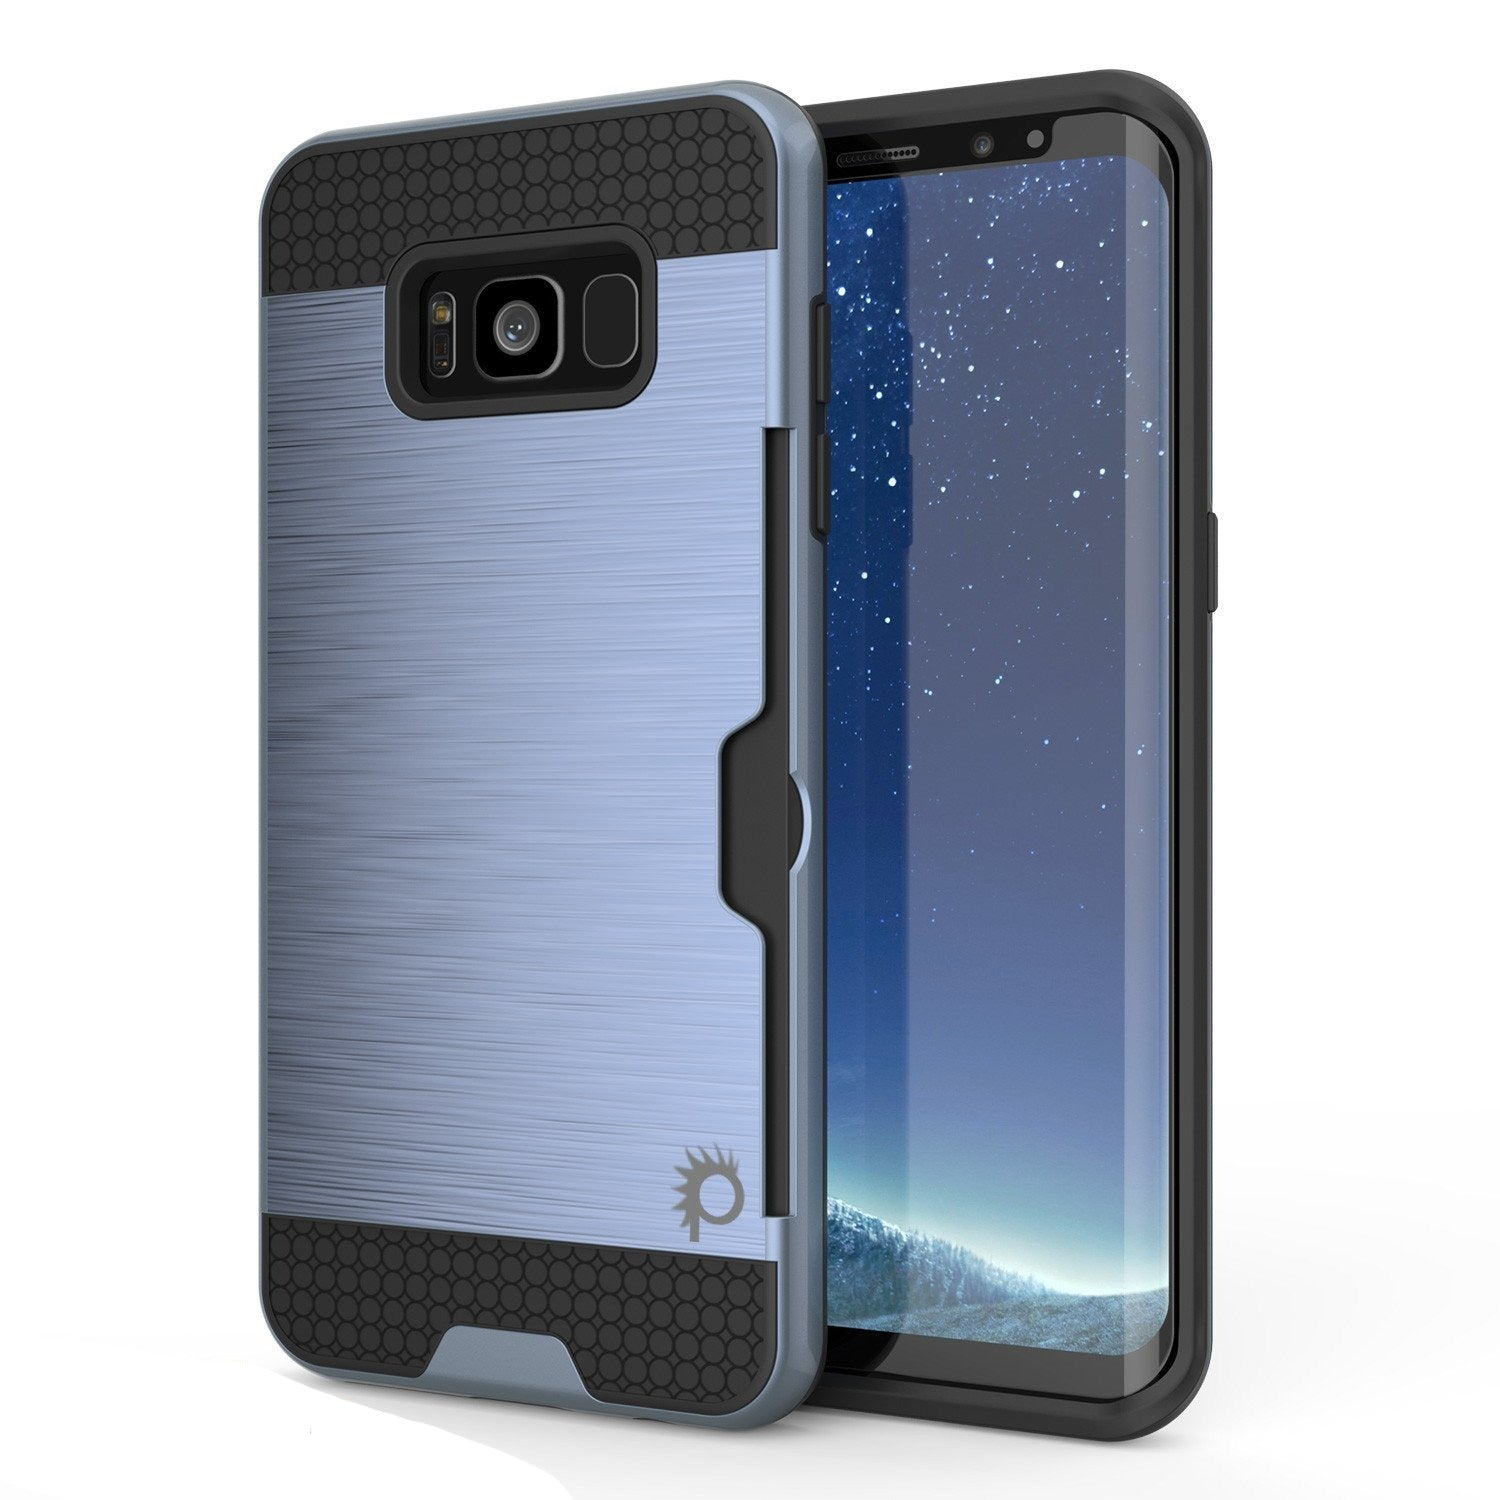 Galaxy S8 Plus Case, PUNKcase [SLOT Series] [Slim Fit] Dual-Layer Armor Cover w/Integrated Anti-Shock System, Credit Card Slot & PunkShield Screen Protector for Samsung Galaxy S8+ [Navy] - PunkCase NZ